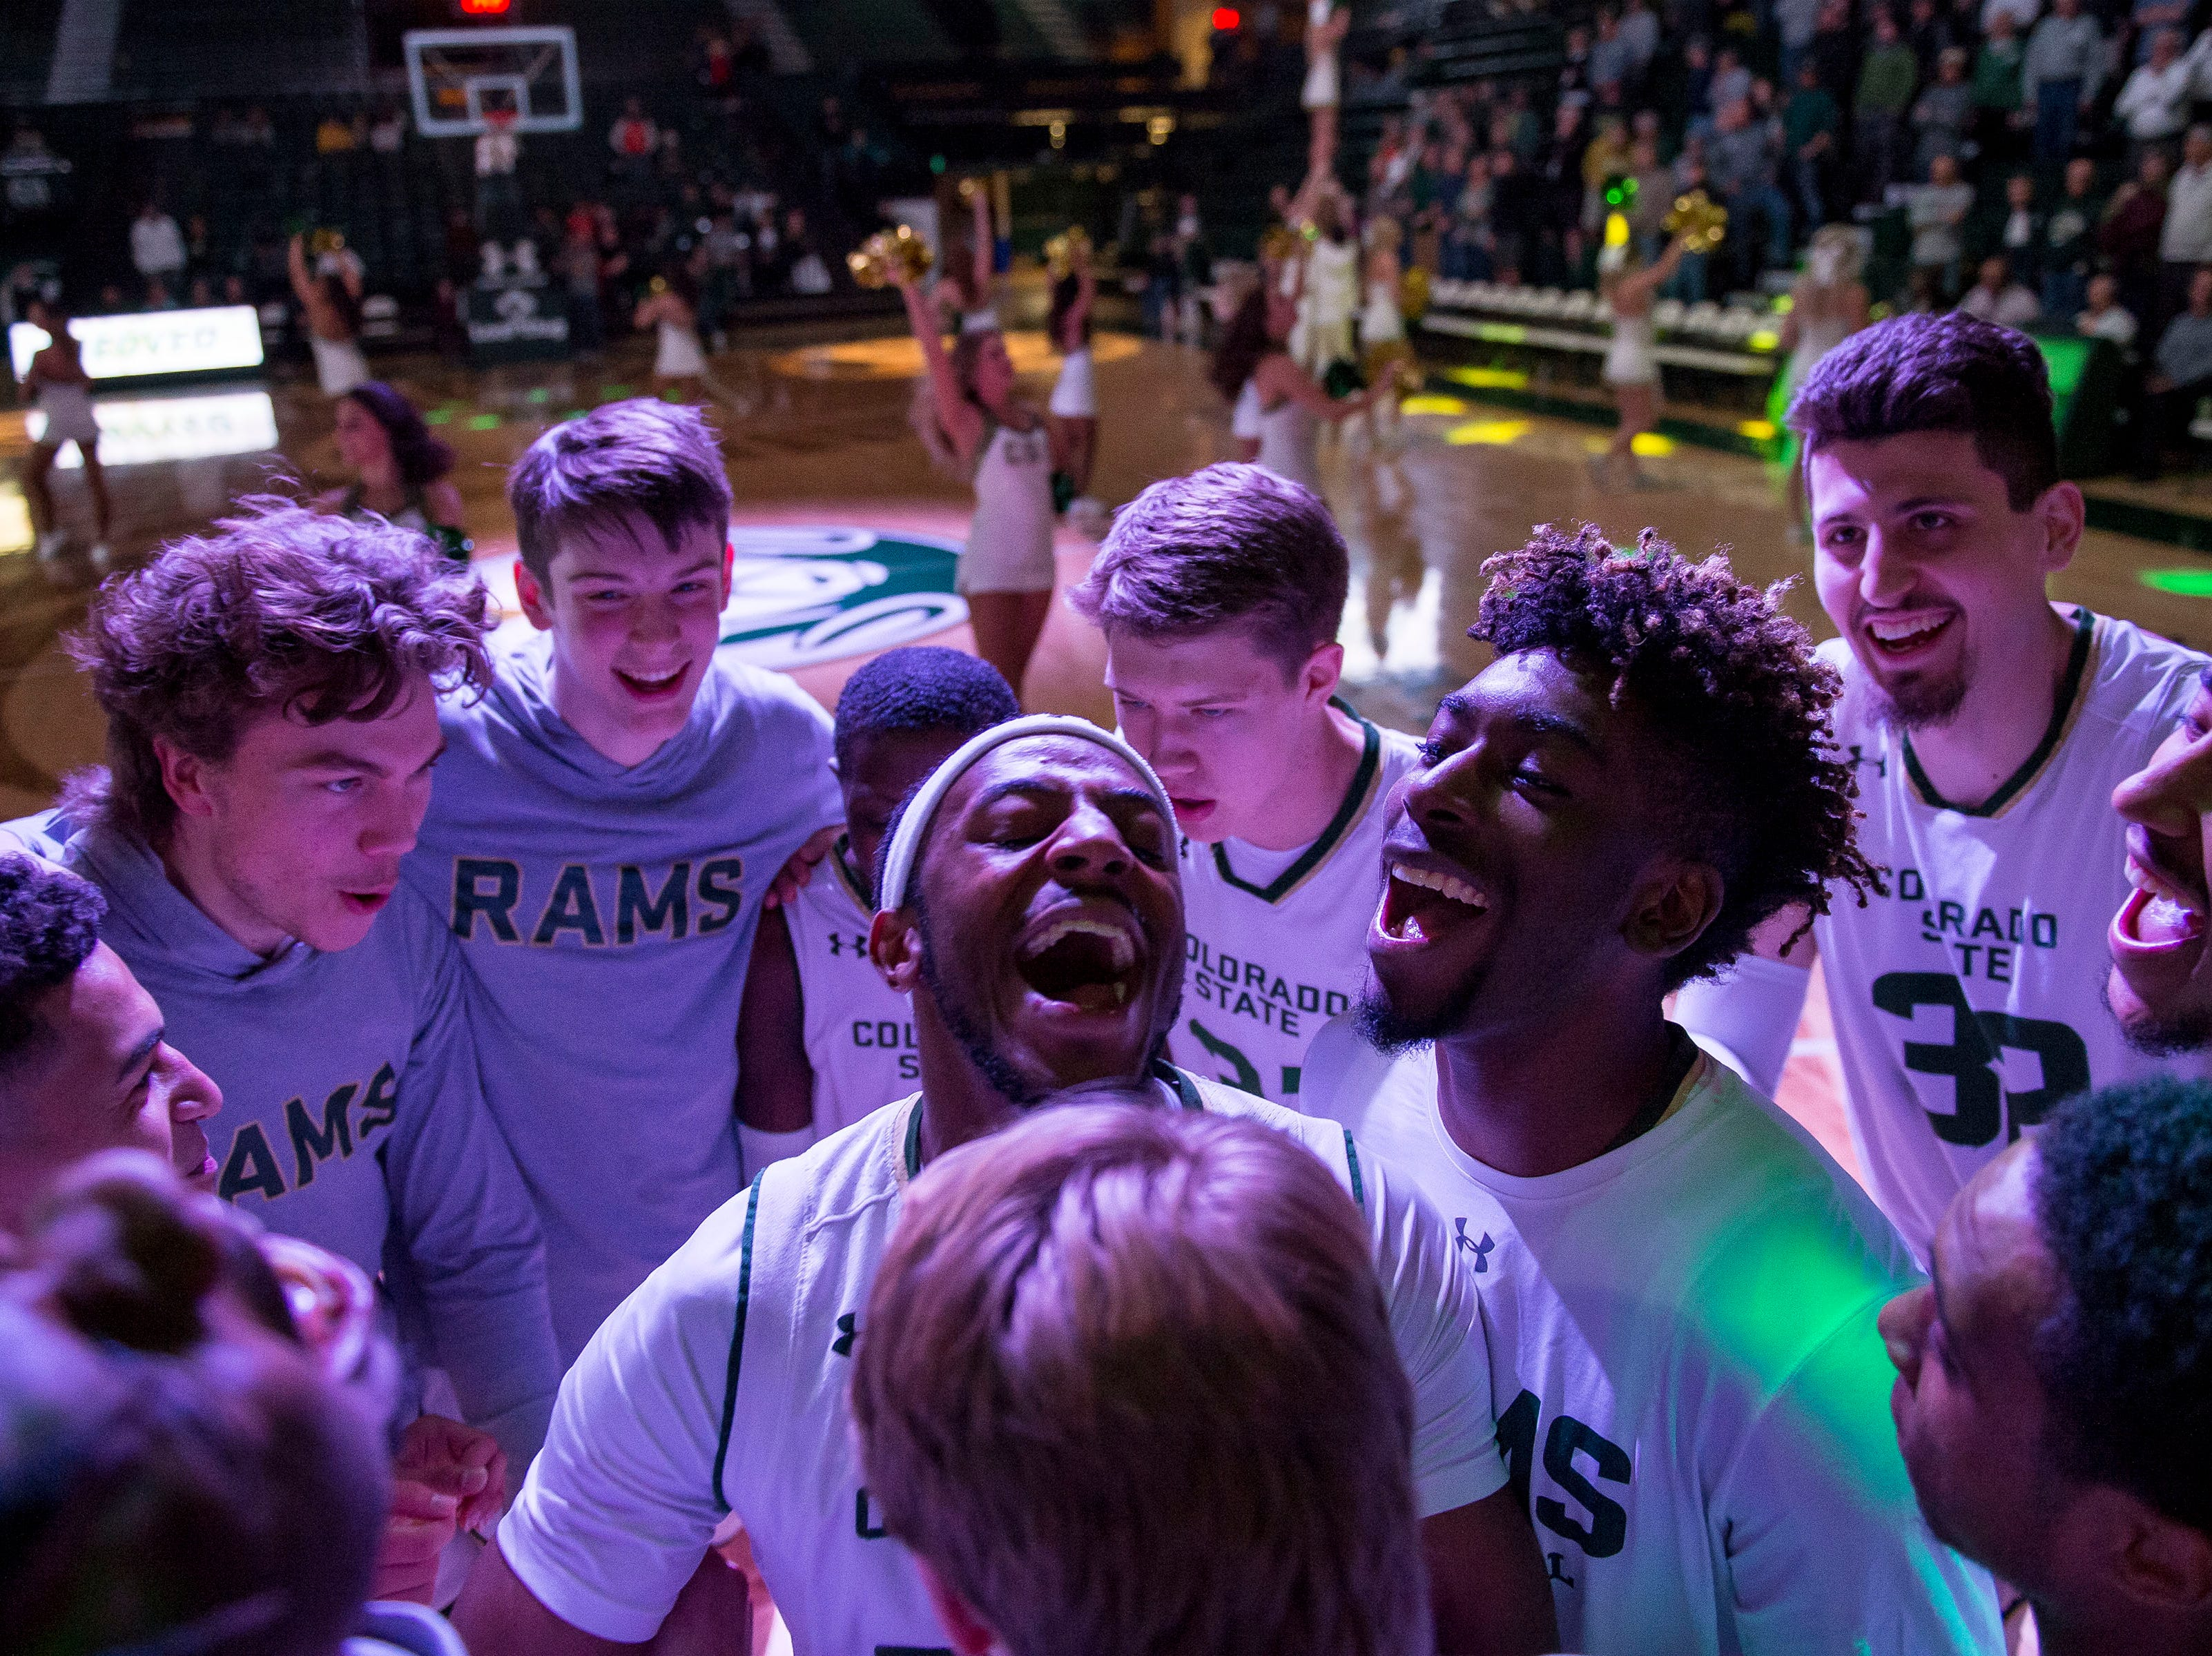 The Colorado State University basketball team gets hyped up on the court before a game against the Air Force Academy on Tuesday, Jan. 8, 2019, at Moby Arena in Fort Collins, Colo.